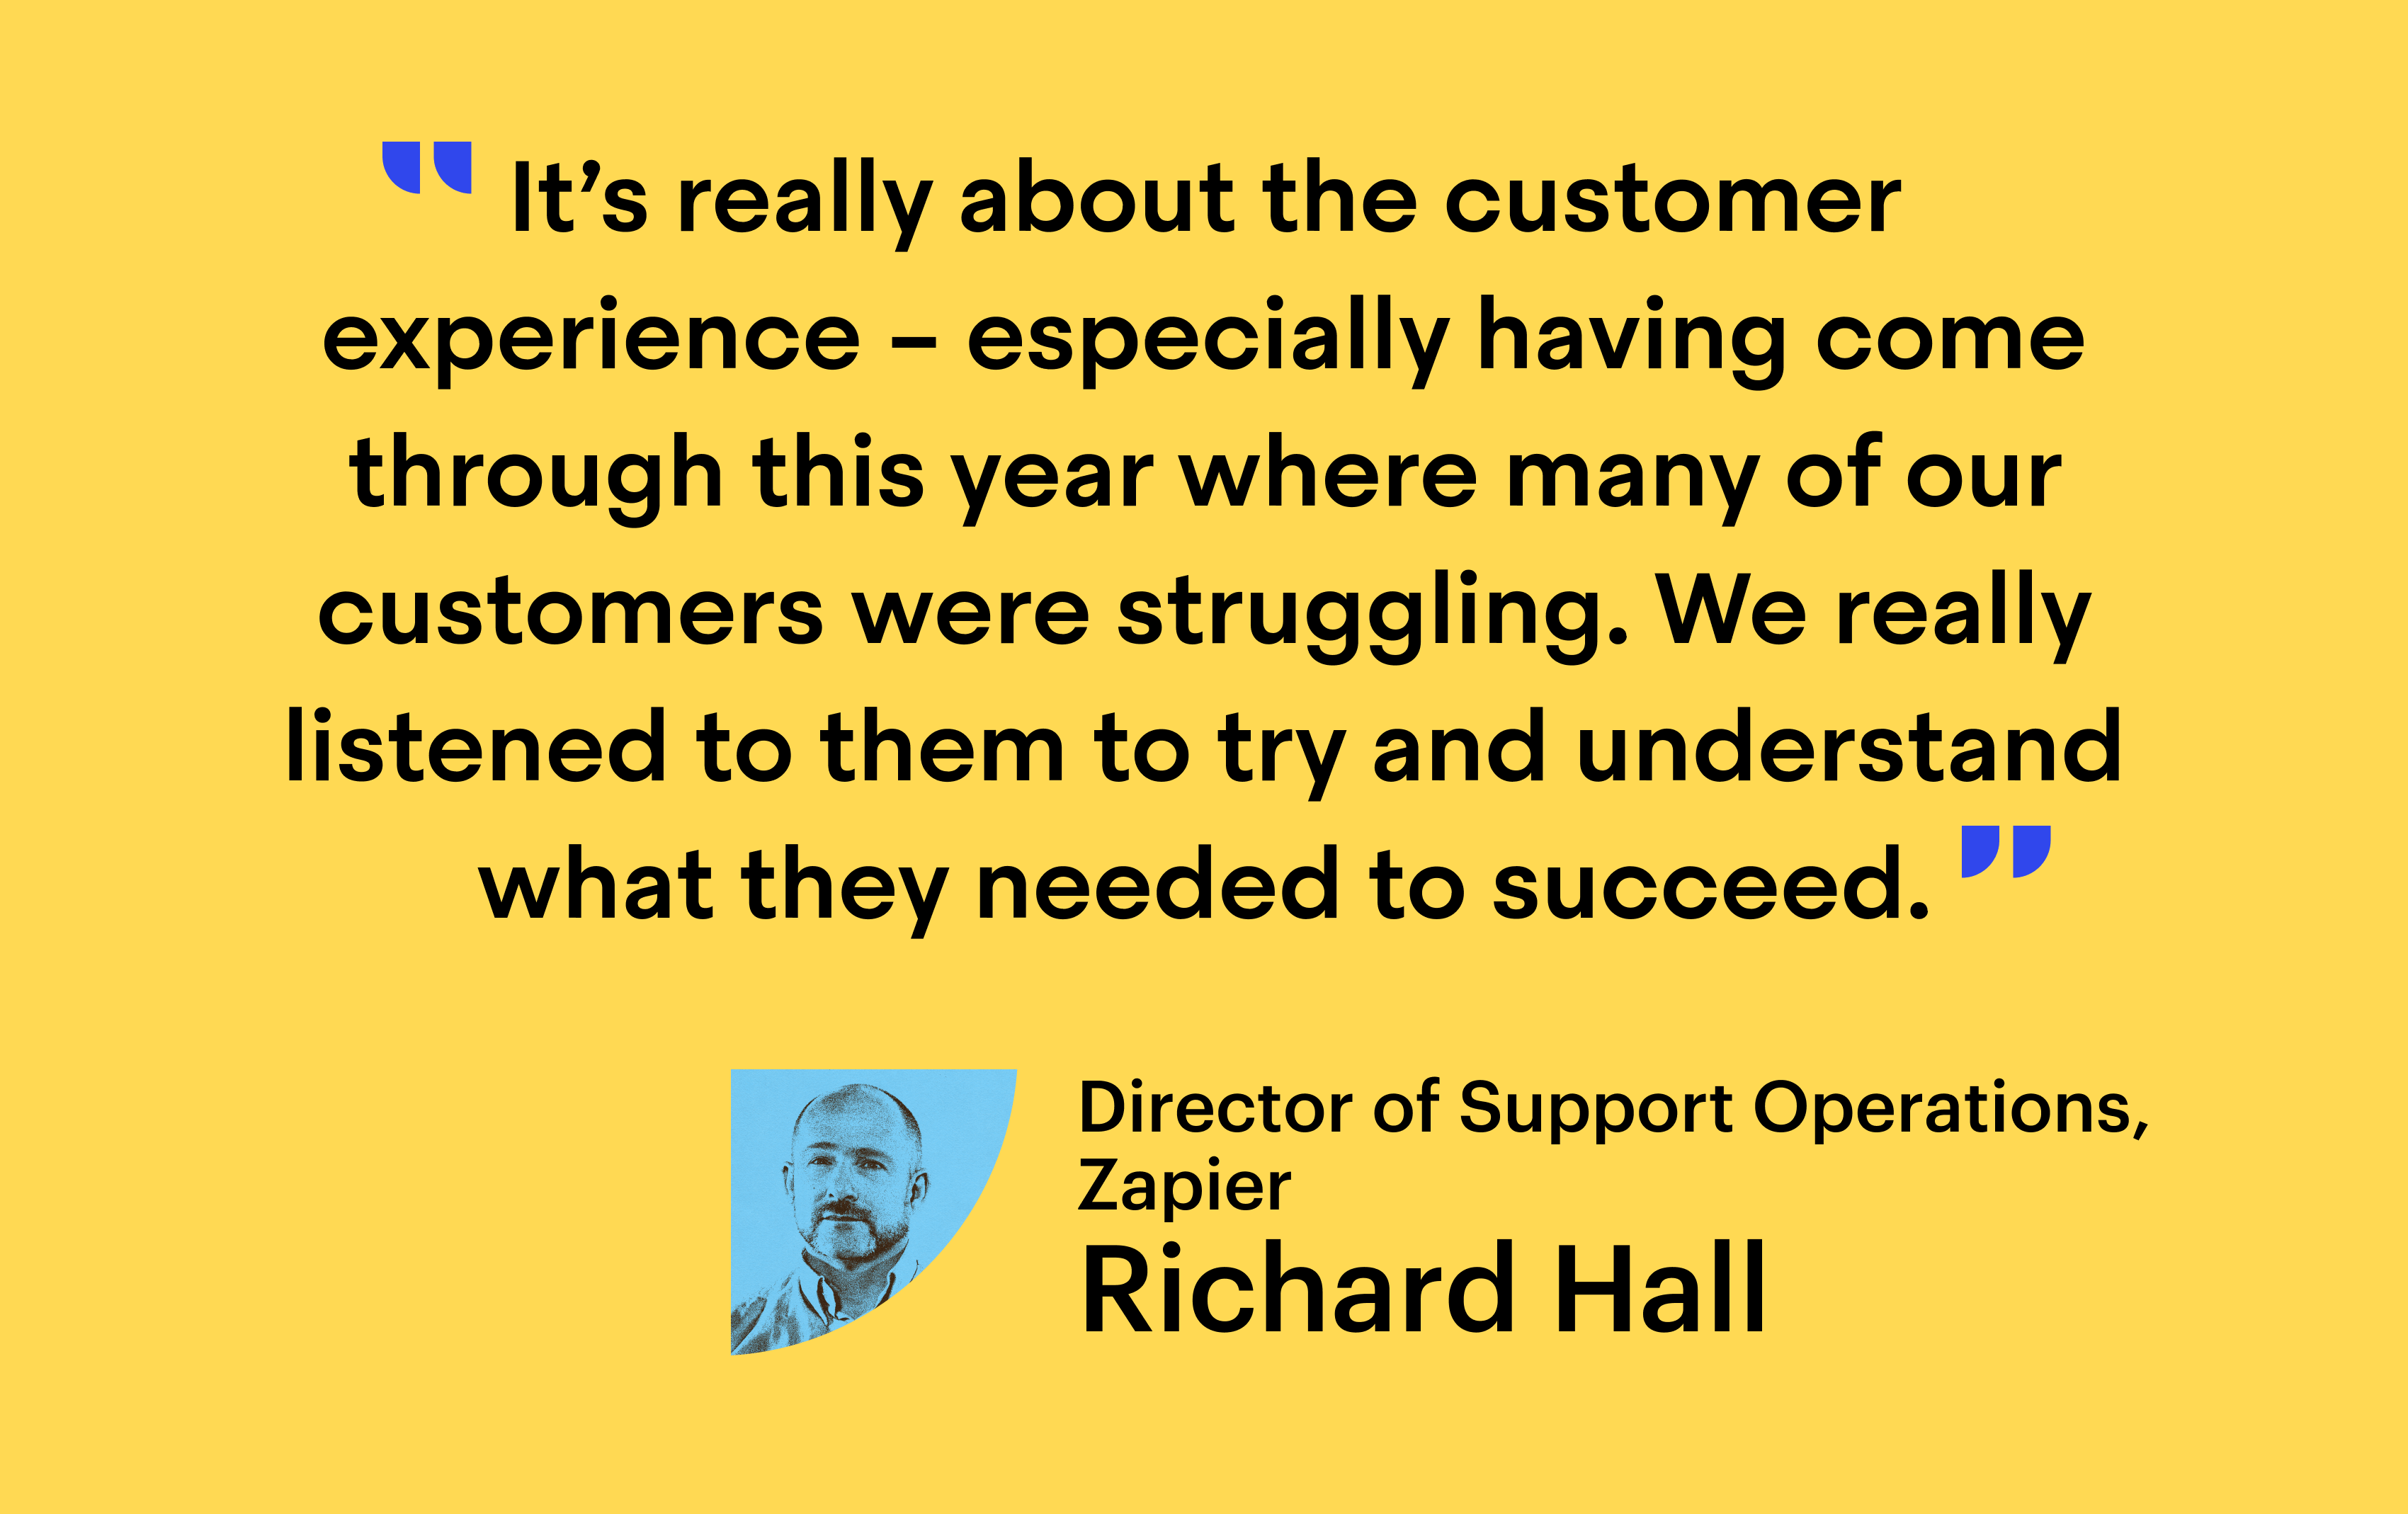 """Quote from Richard Hall, Director of Support Operations at Zapier: """"It's really about the customer experience – especially having come through this year where many of our customers were struggling. We listened to them to try and understand what they needed to succeed"""""""